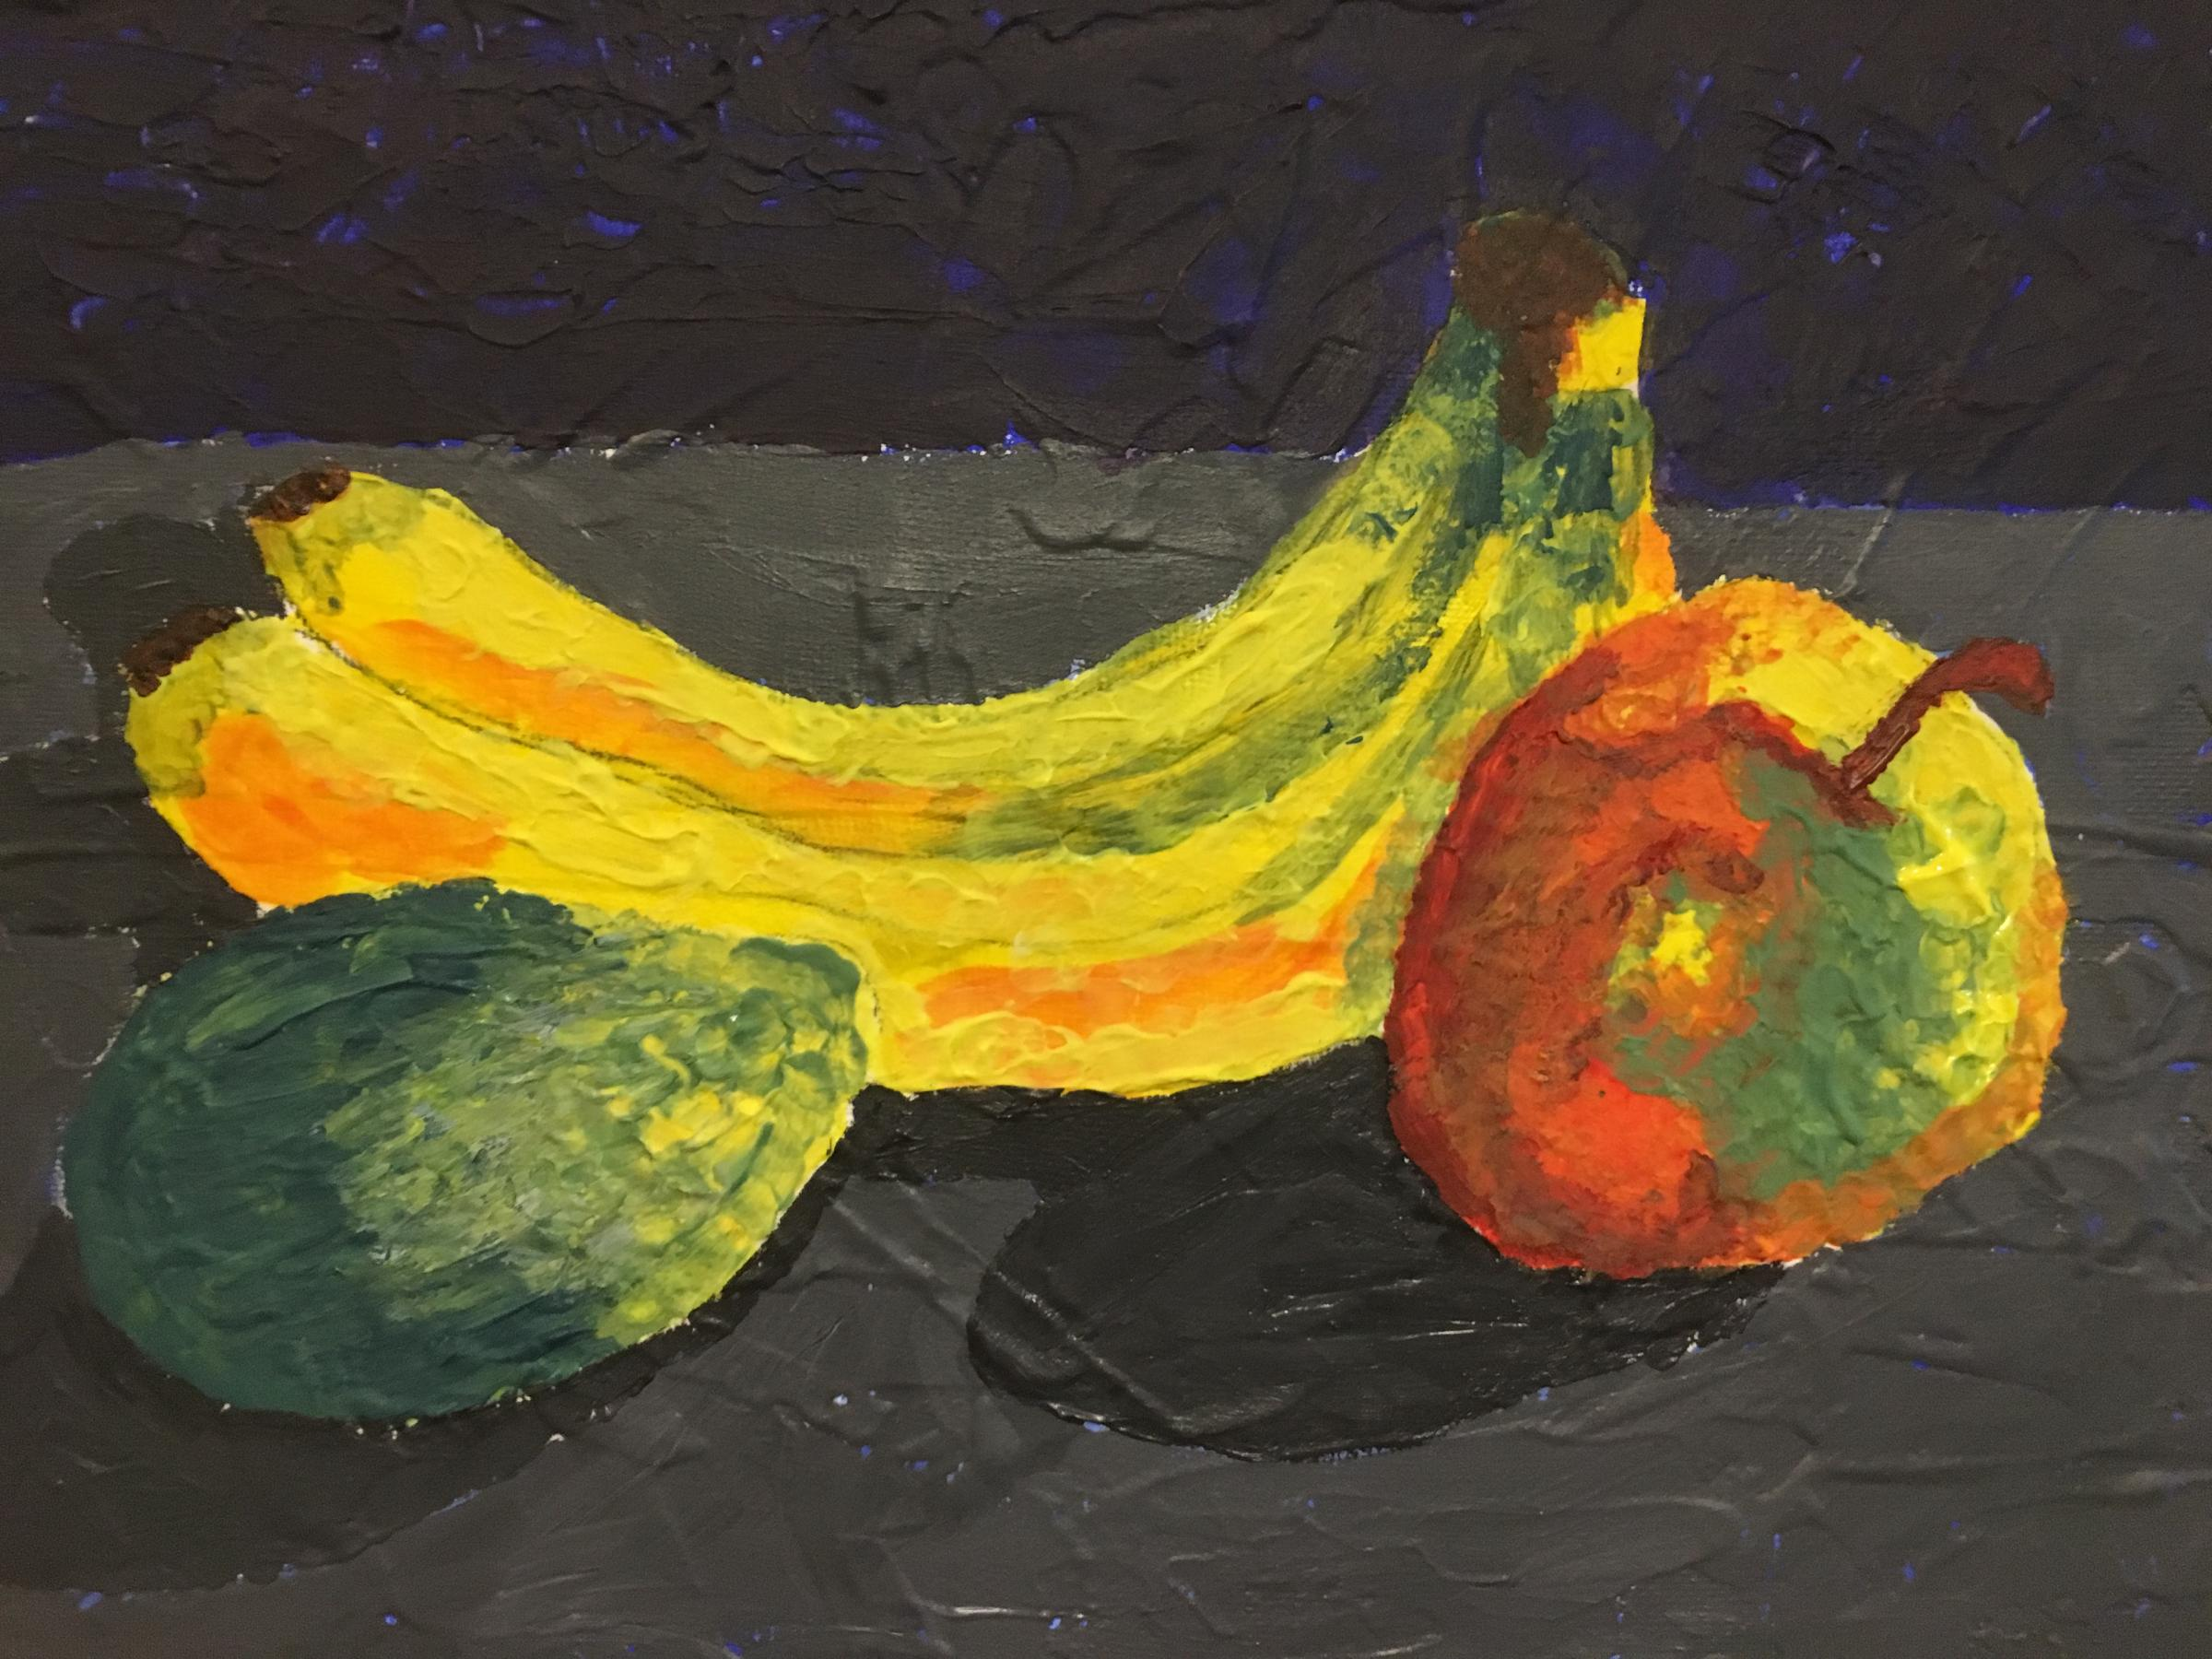 Holiday Arts: Still Life